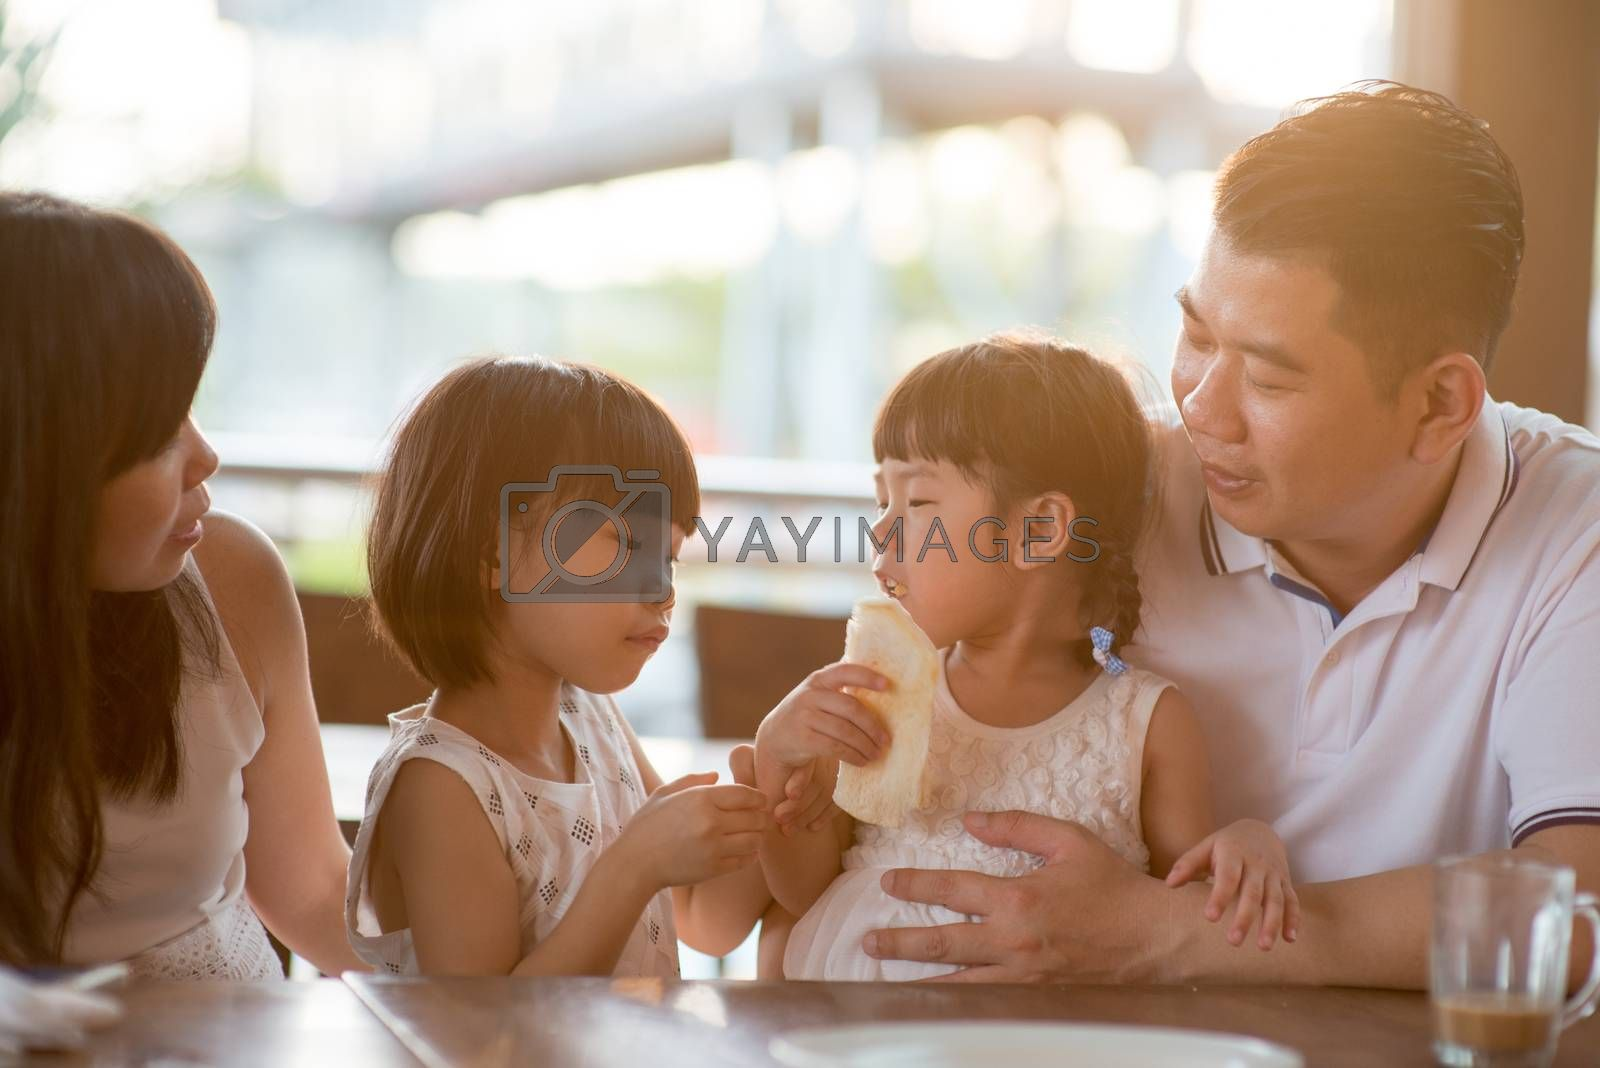 Cute children eating and sharing bread at cafeteria. Asian family outdoor lifestyle with natural light.